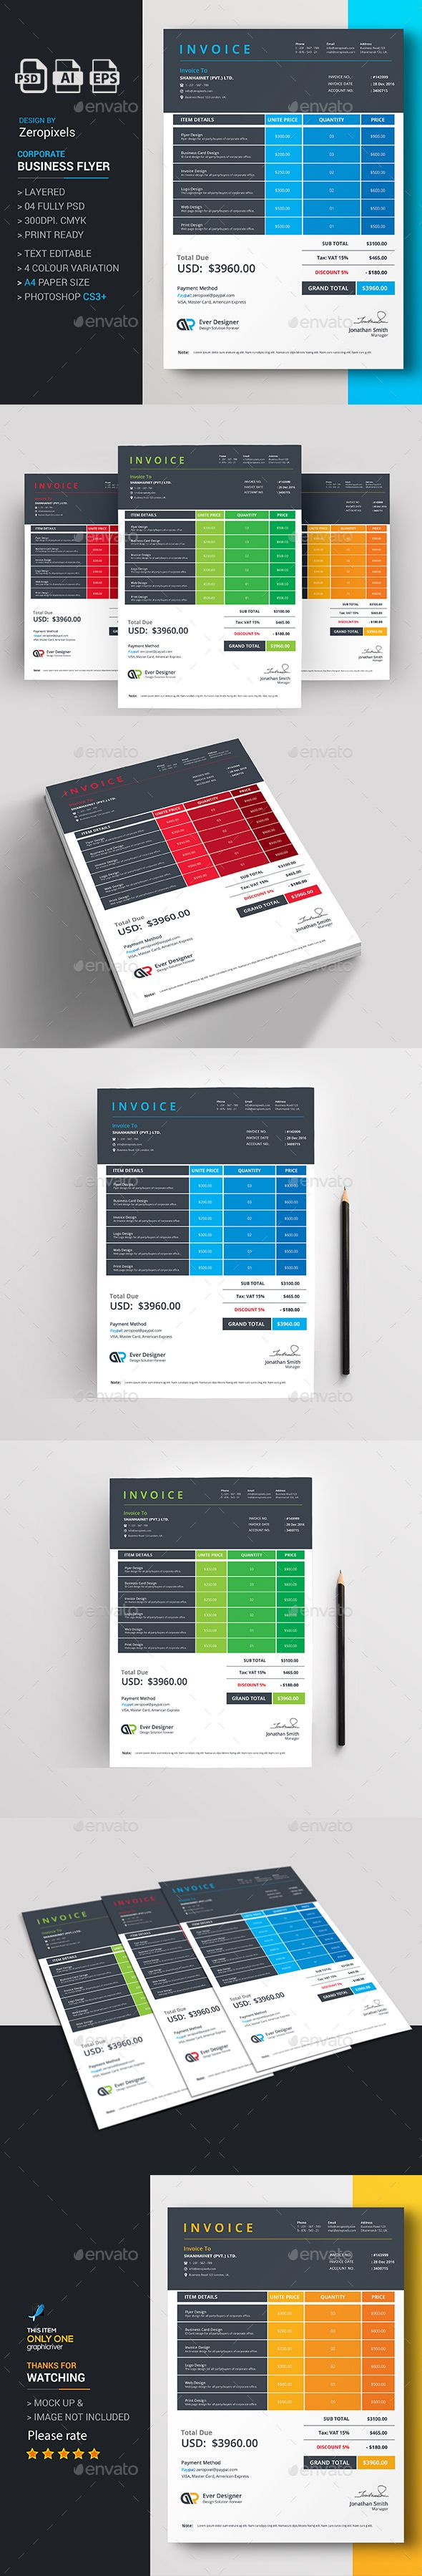 proposal template for word%0A Invoice  PSD  EPS  indesign  word  u     Click here to download   http    Invoice  TemplateProposal